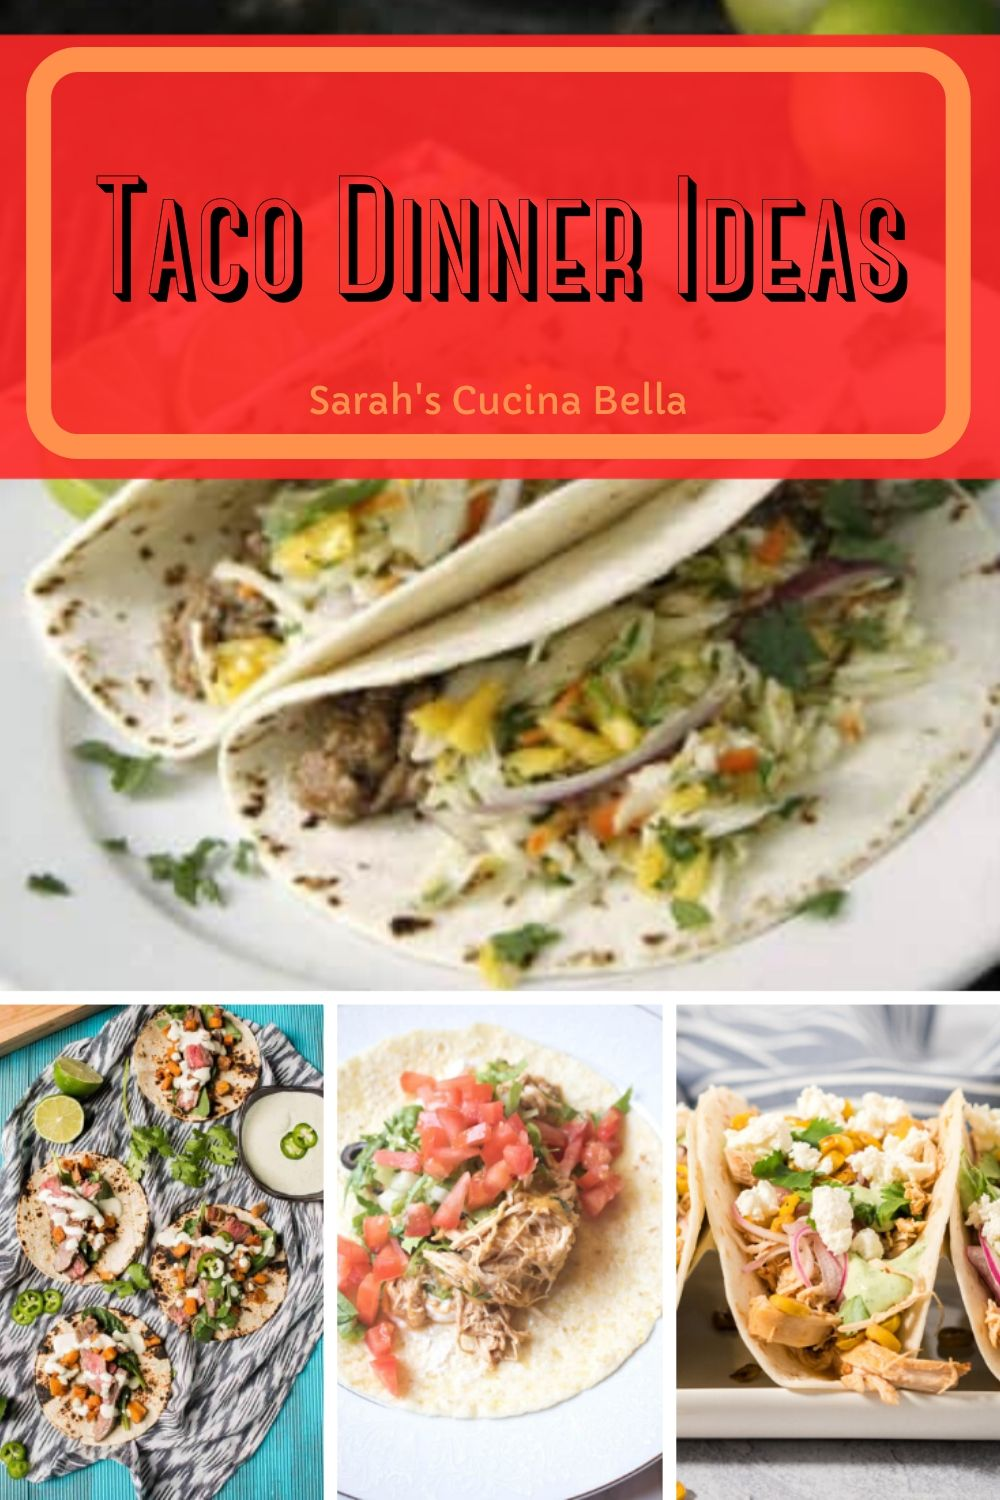 These 21 Taco Dinner Ideas will make your next taco dinner a delight.